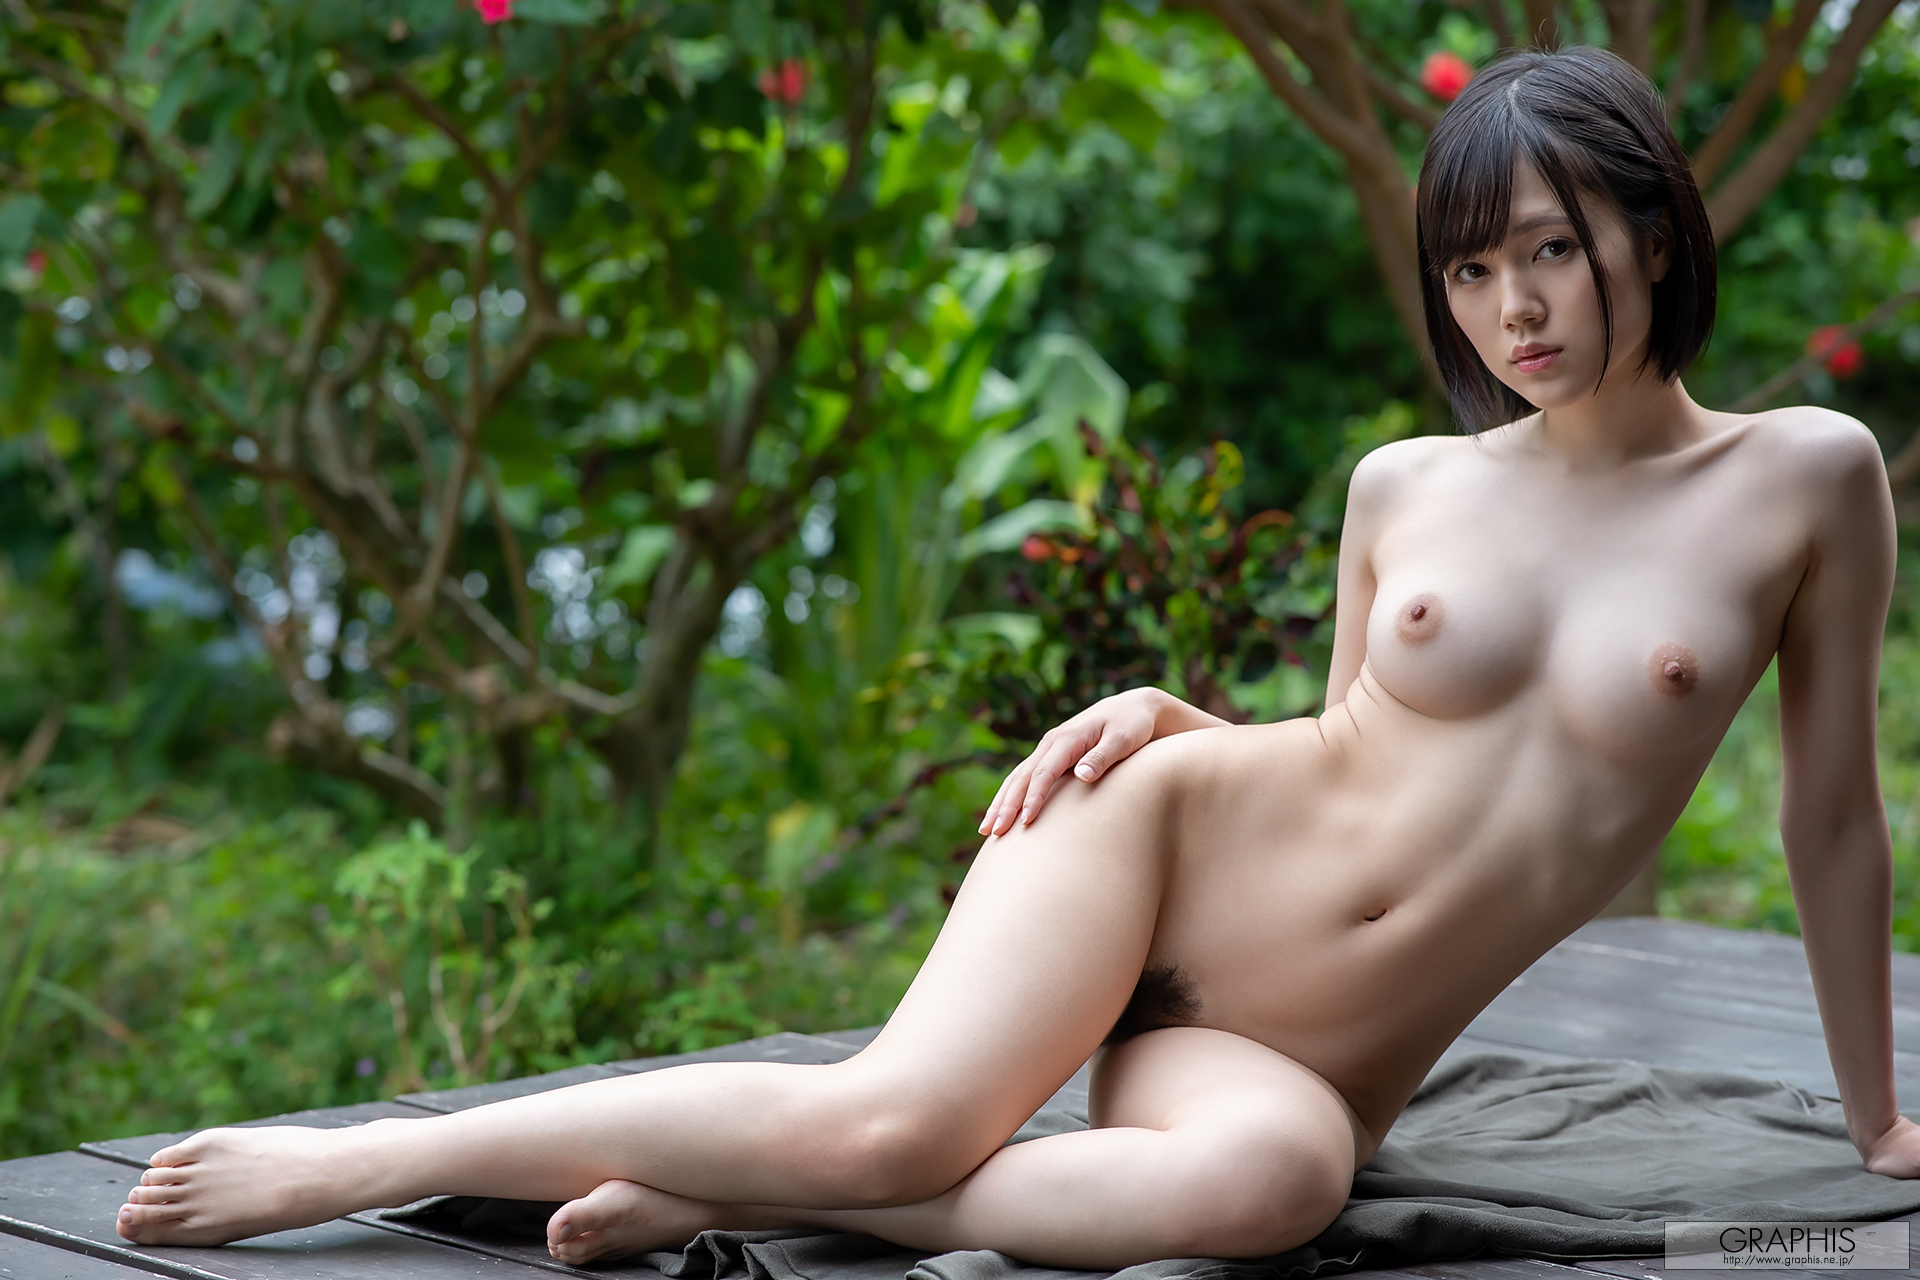 big butt all stars juicy evasive angles image gallery Adorable, Amateur, Asian, Cutie, Hotbody, Malay, Naked, Pov, Selfshot, Sexy, Trimmedbush, Trimmedpussy